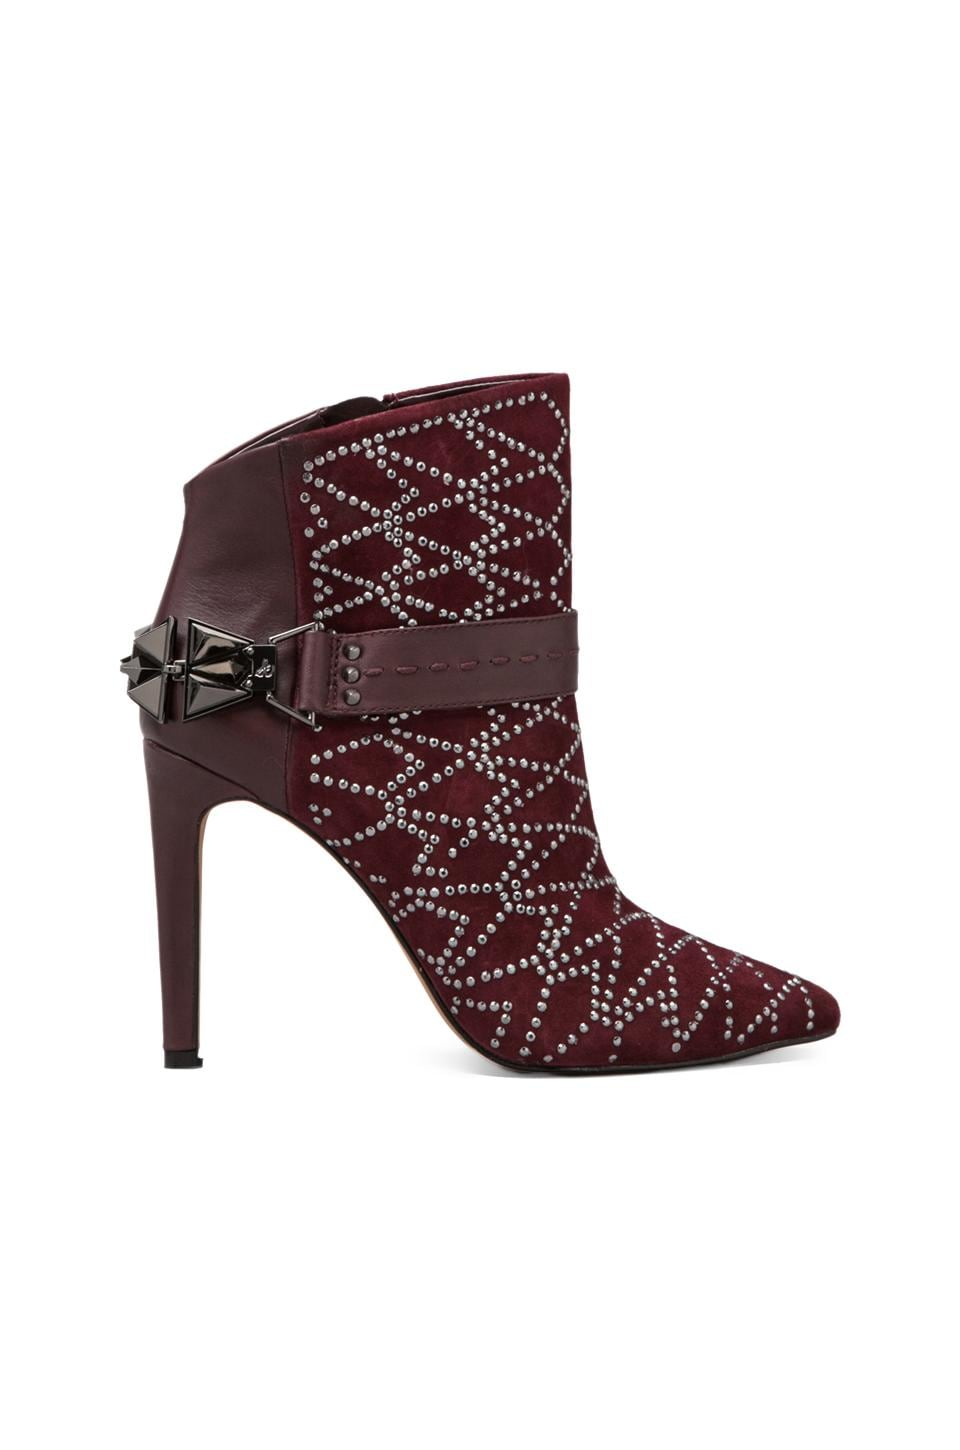 Sam Edelman Mila Boot in Burgundy